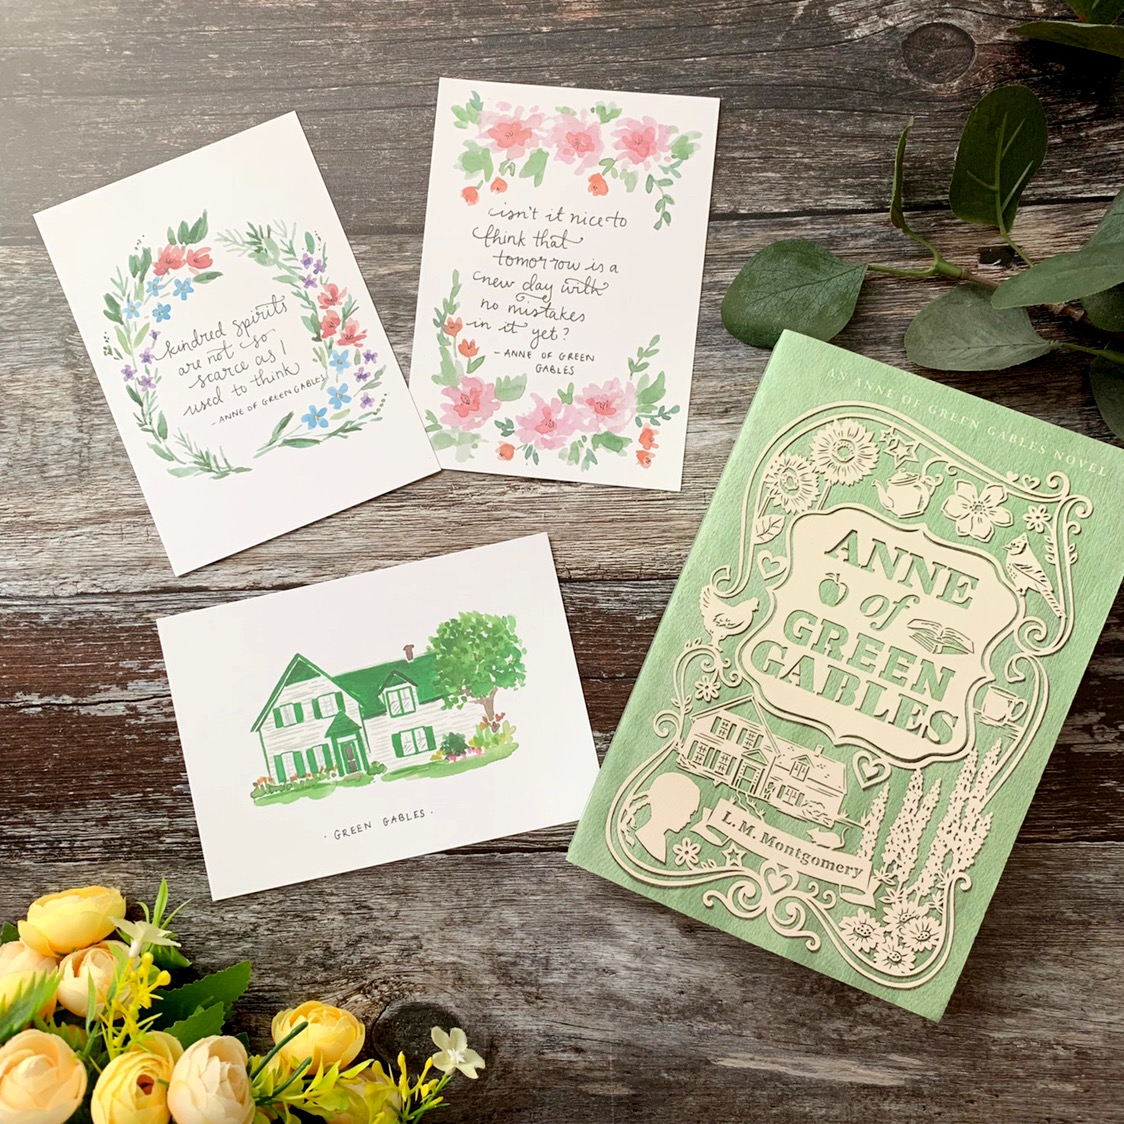 Anne of Green Gables gift bundle